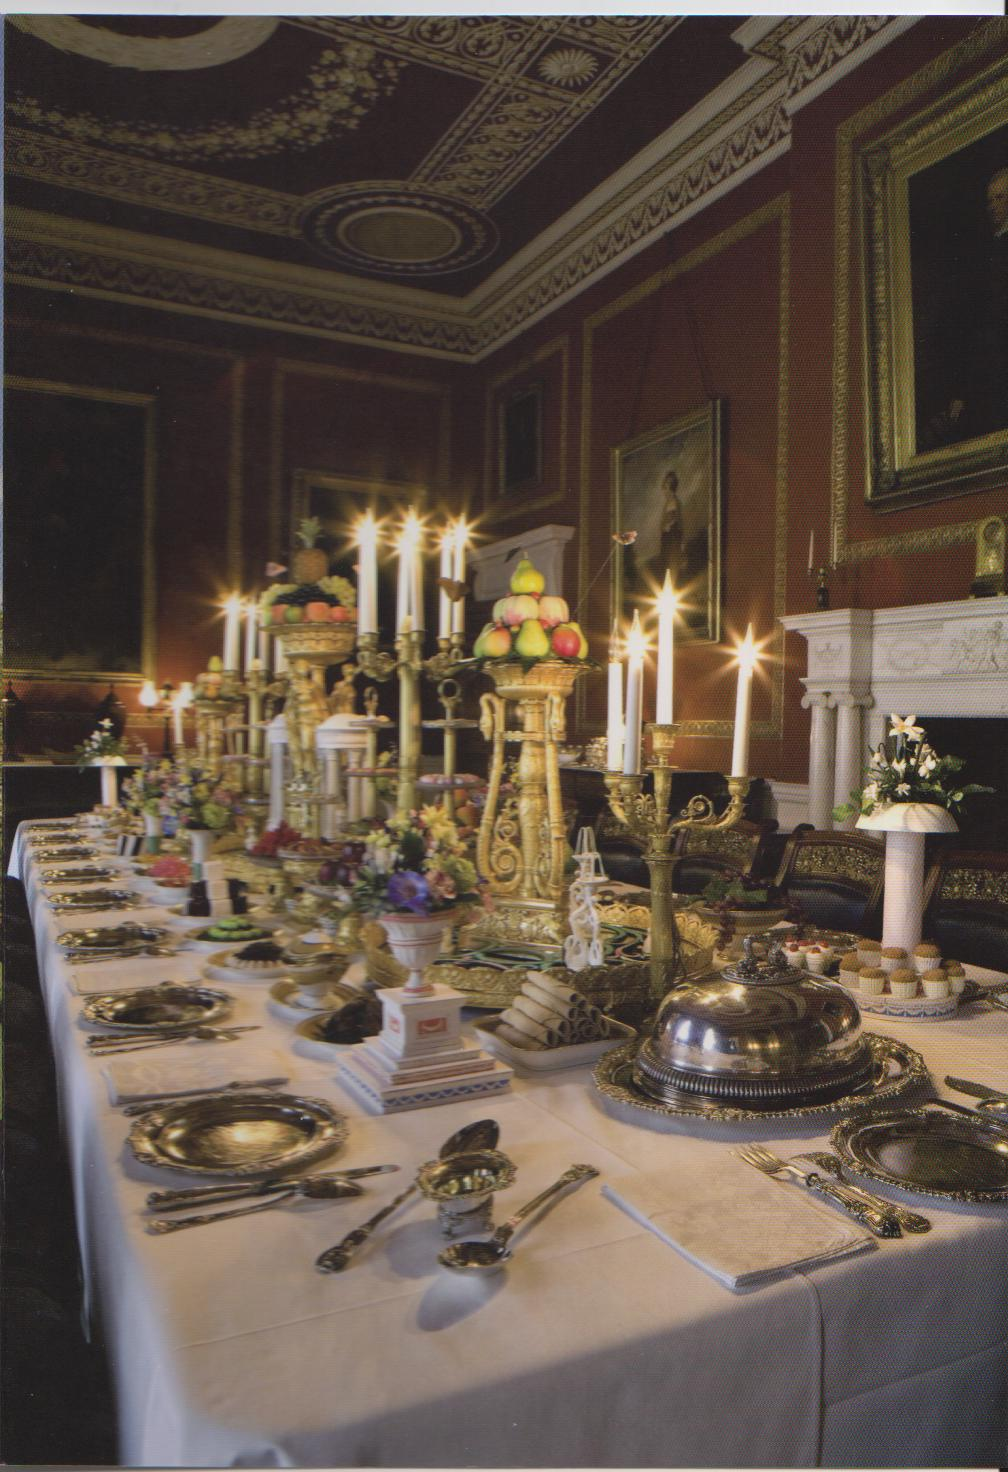 rp_grand-regency-dining-room.jpg